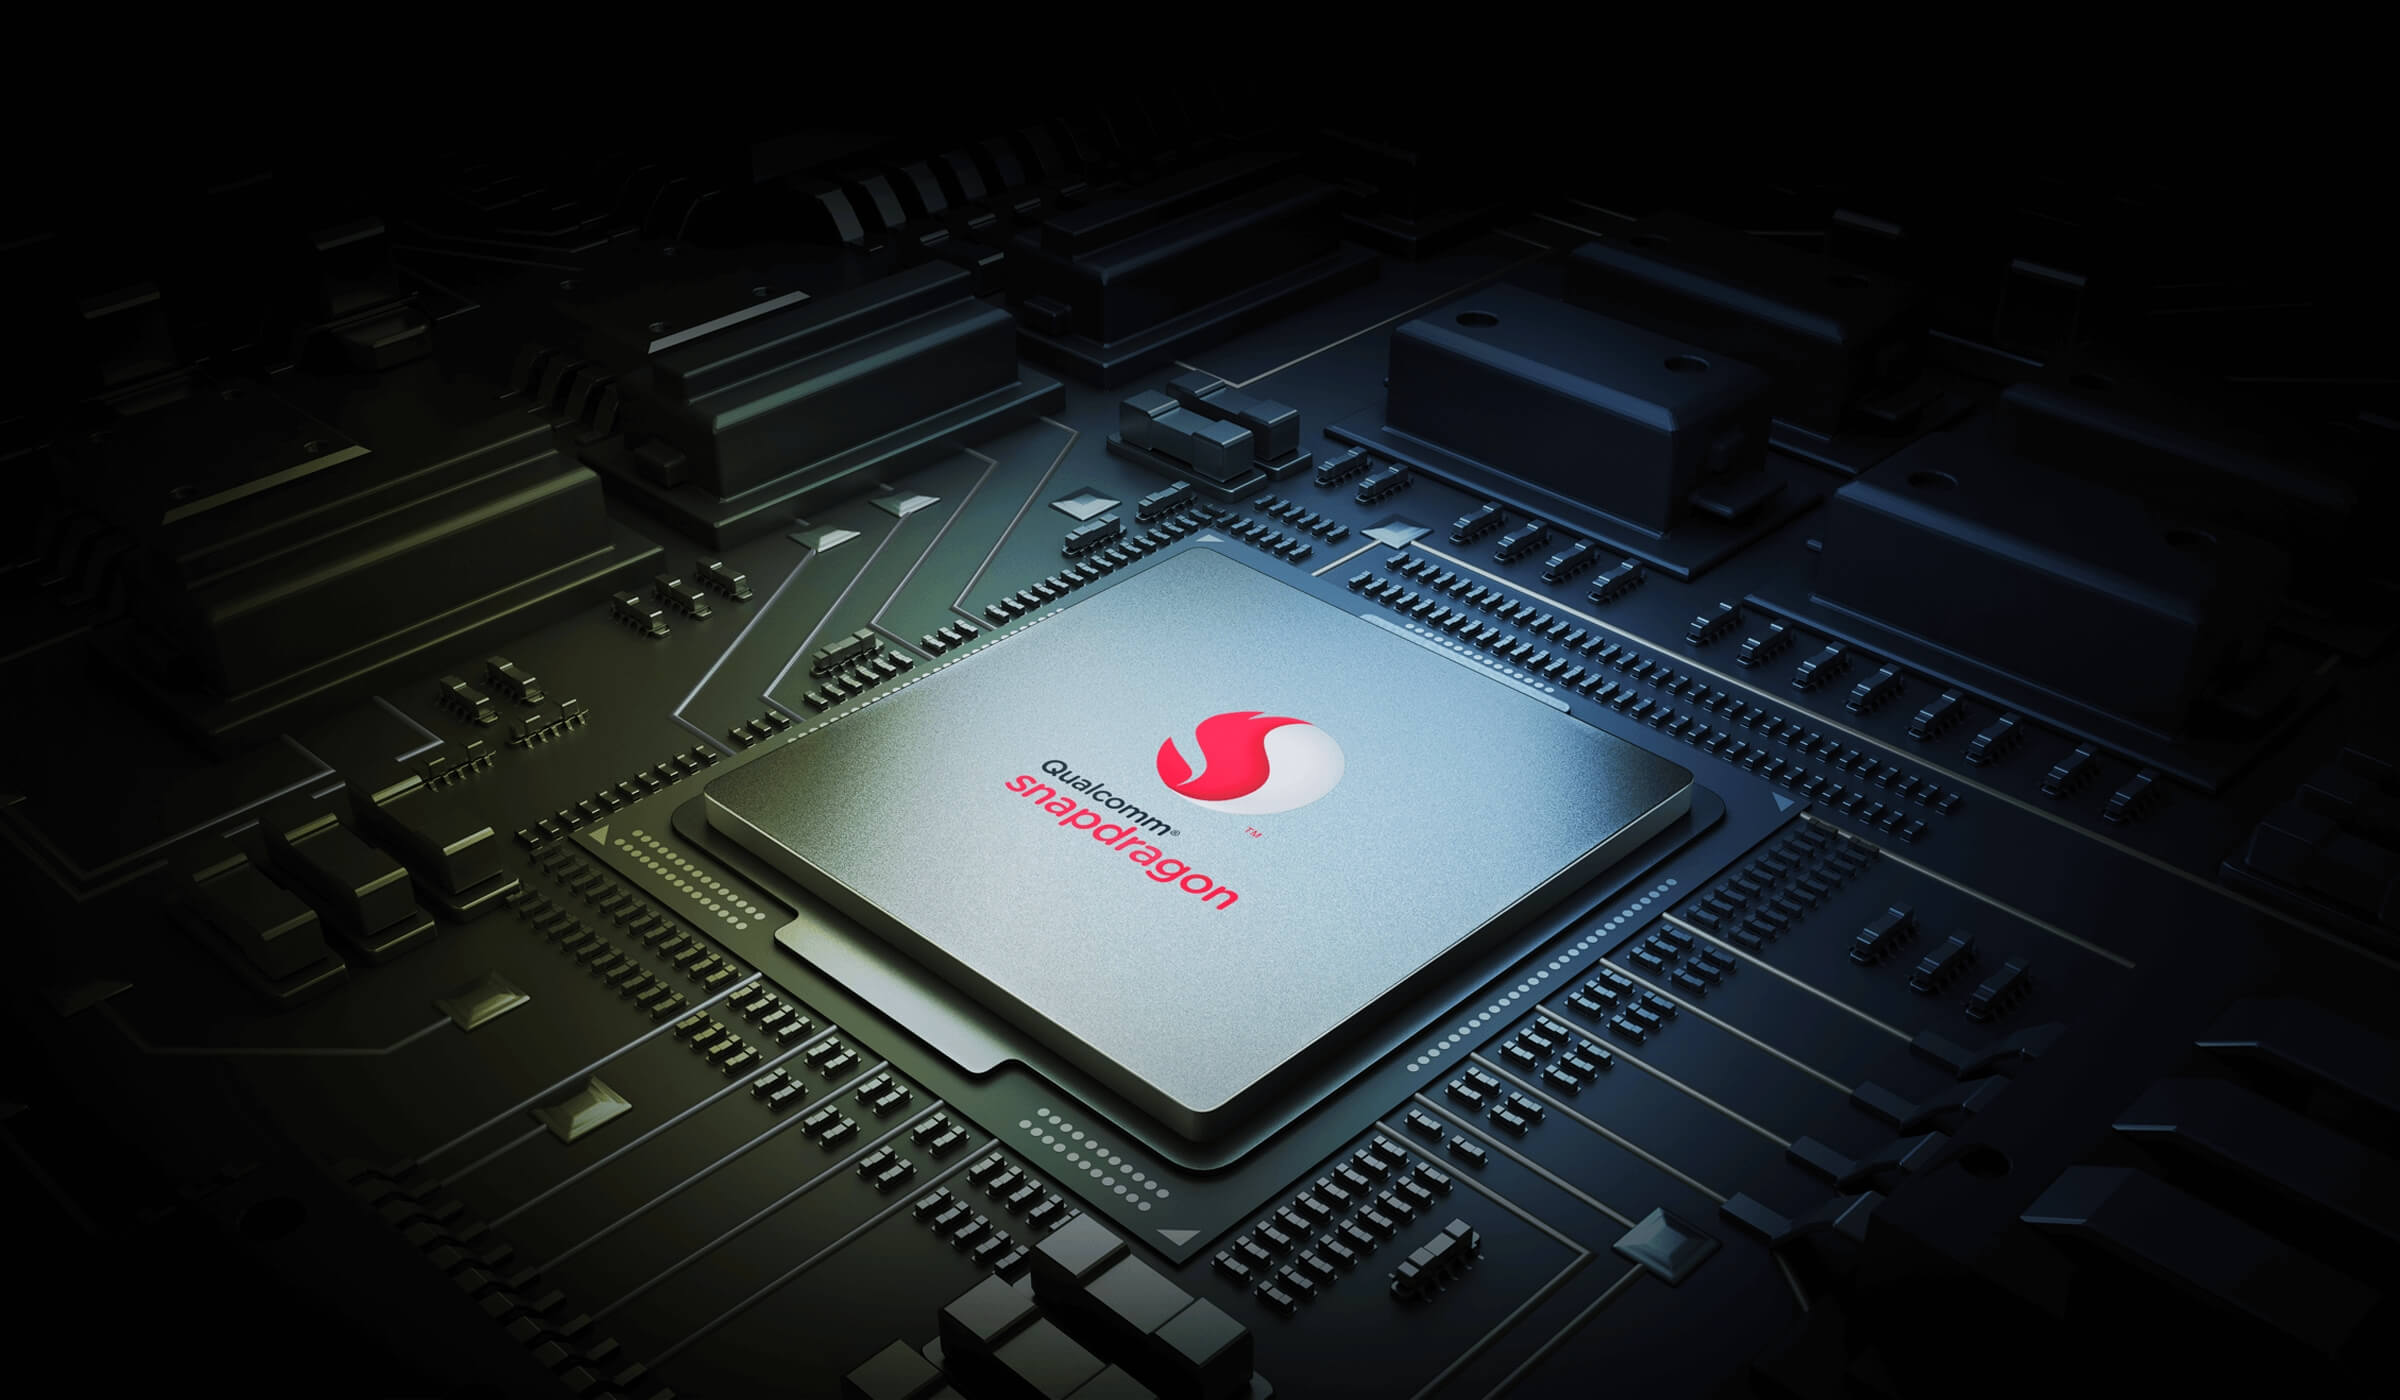 Мощный процессор Qualcomm Snapdragon 660